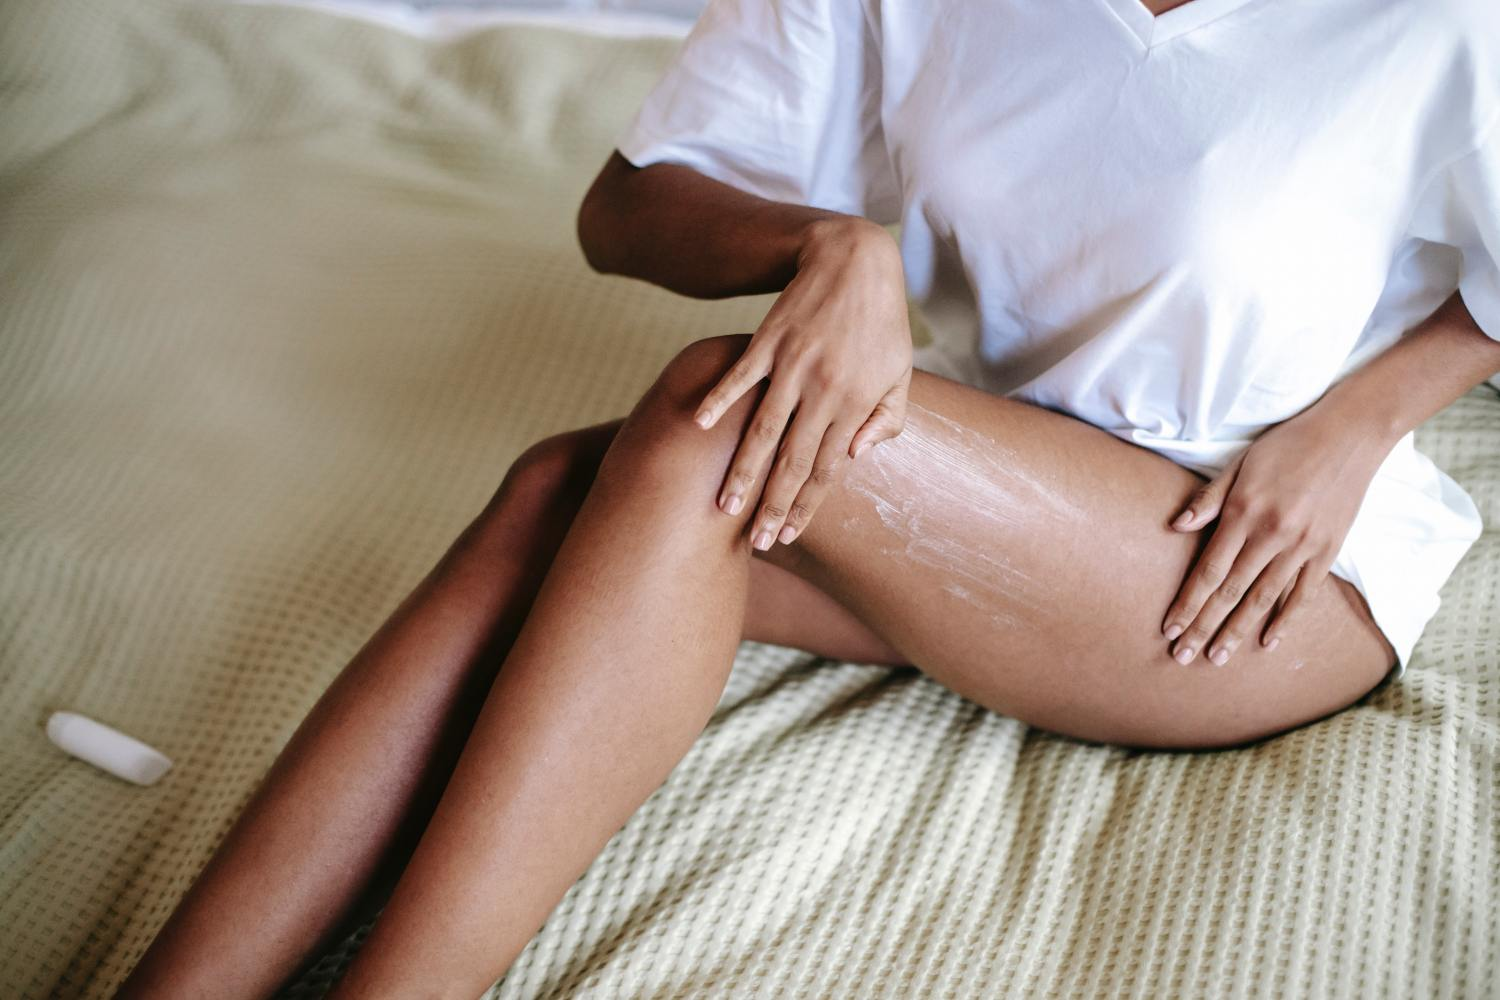 laser hair removal: 12 things you need to know before having treatment